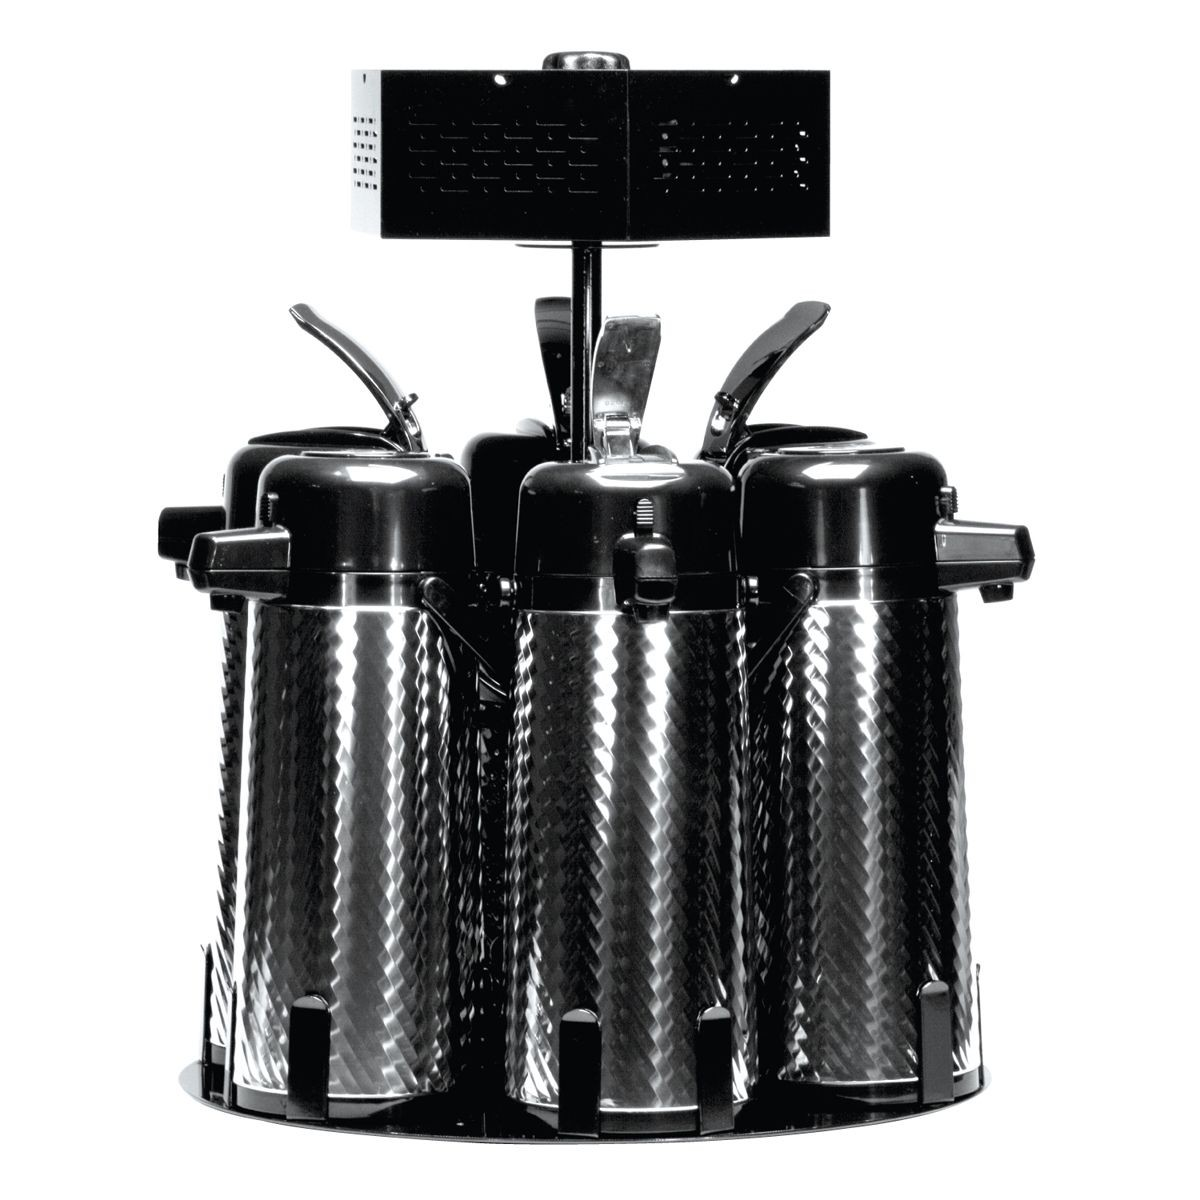 Service Ideas RRA6V2C 6-Station Rotating Airpot Stand with Condiment Holder